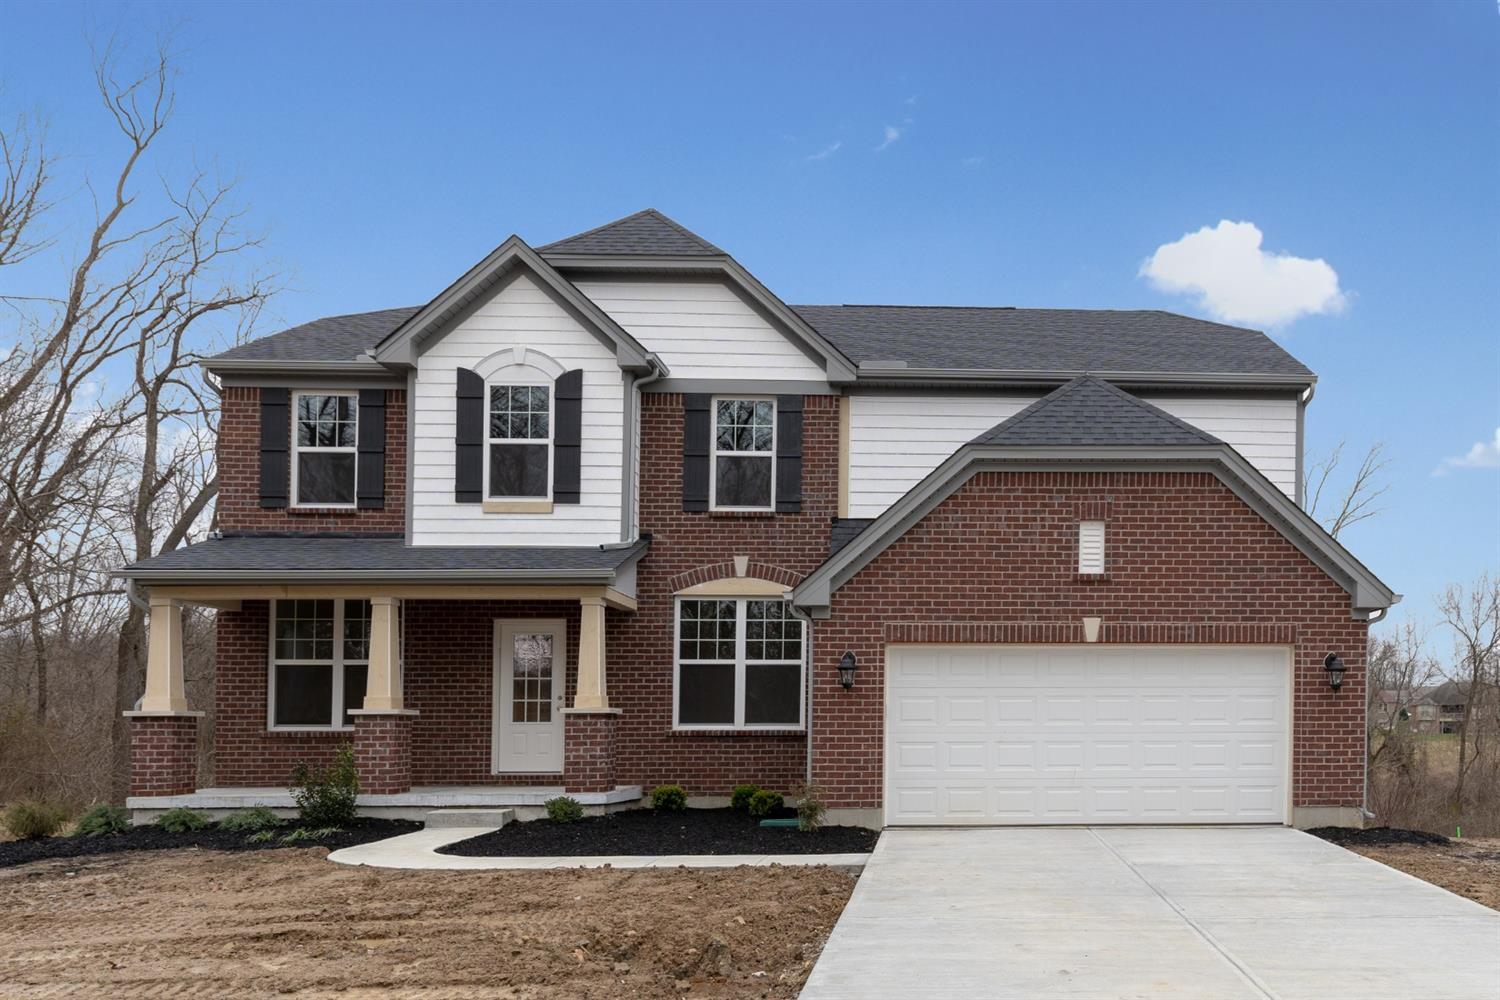 106 Reids Wy Cleves, OH